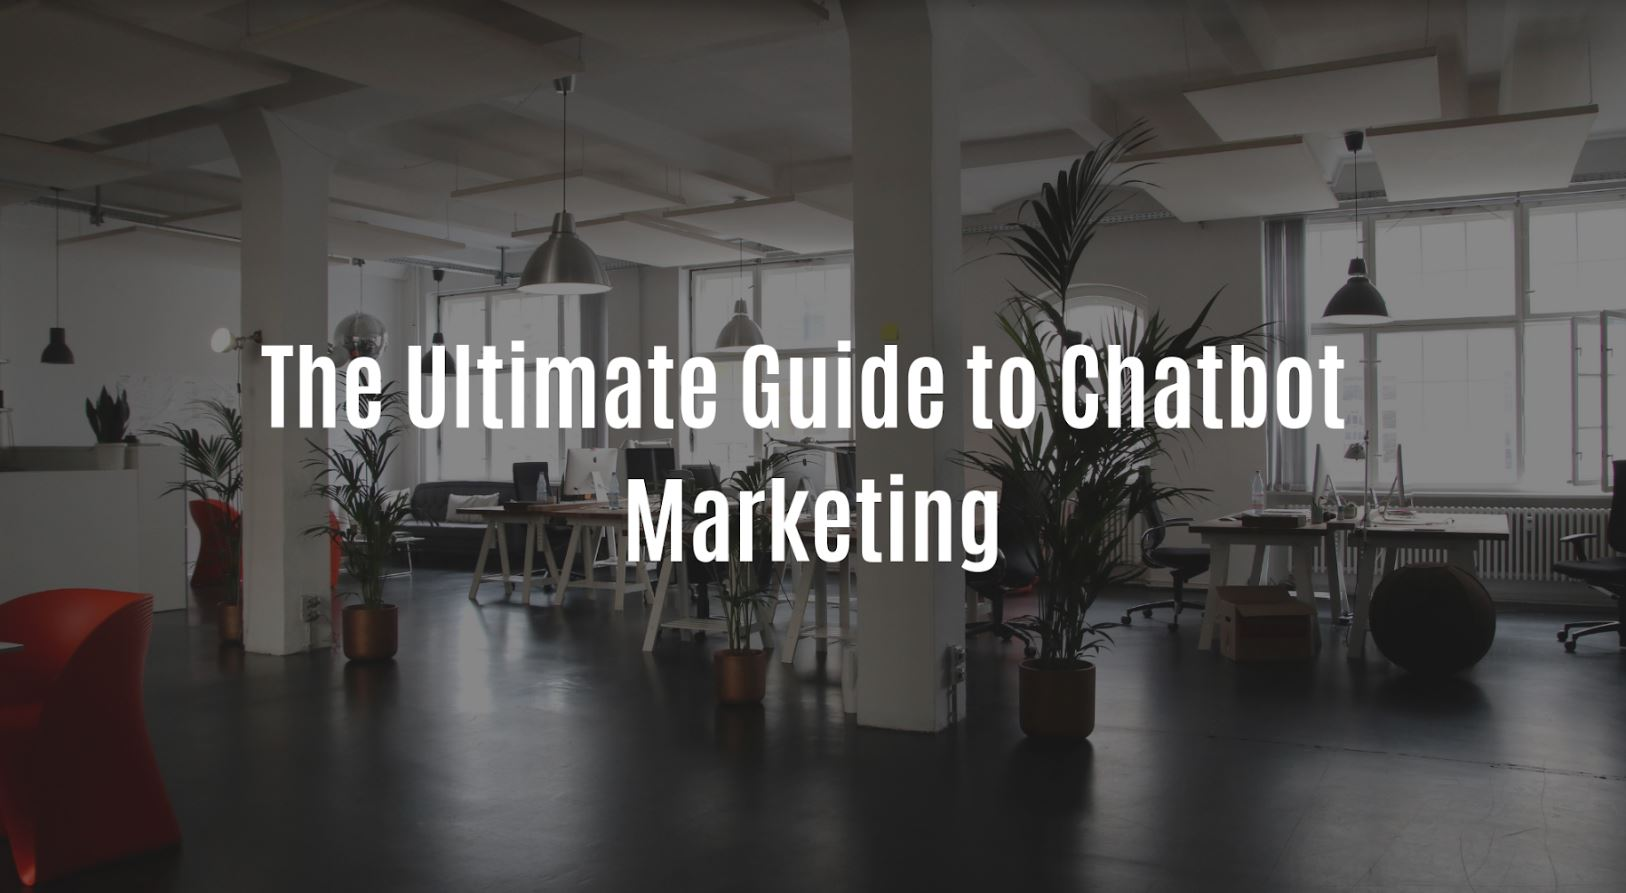 The Ultimate Guide to Chatbot Marketing.JPG